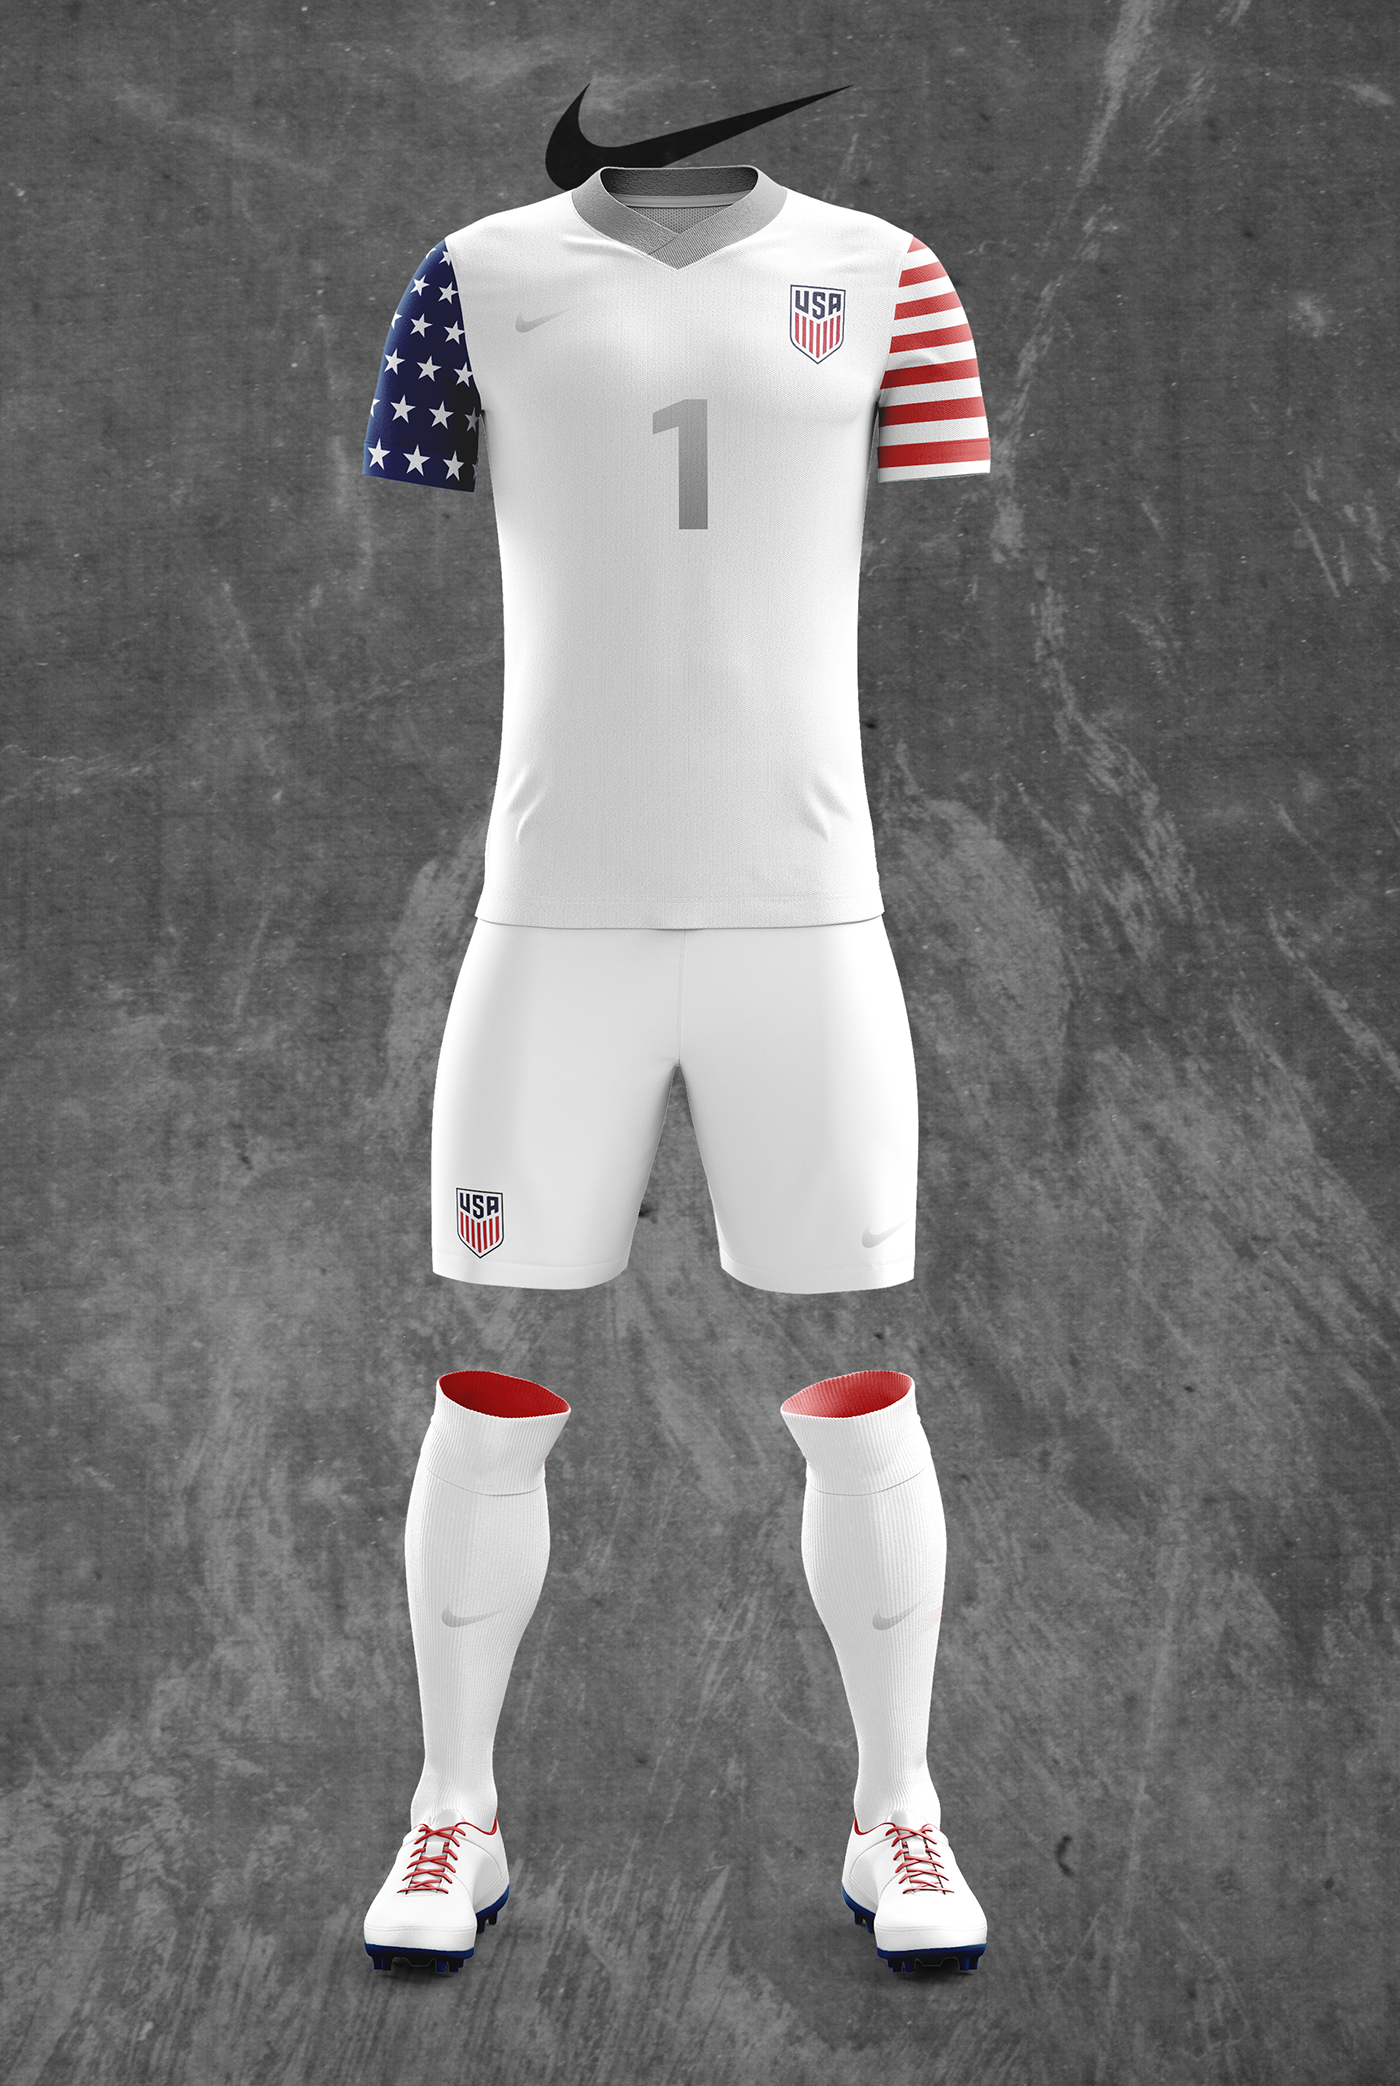 47d6a0cf5 Concept US Men s National Team Nike Soccer Kit Designs on Behance ...